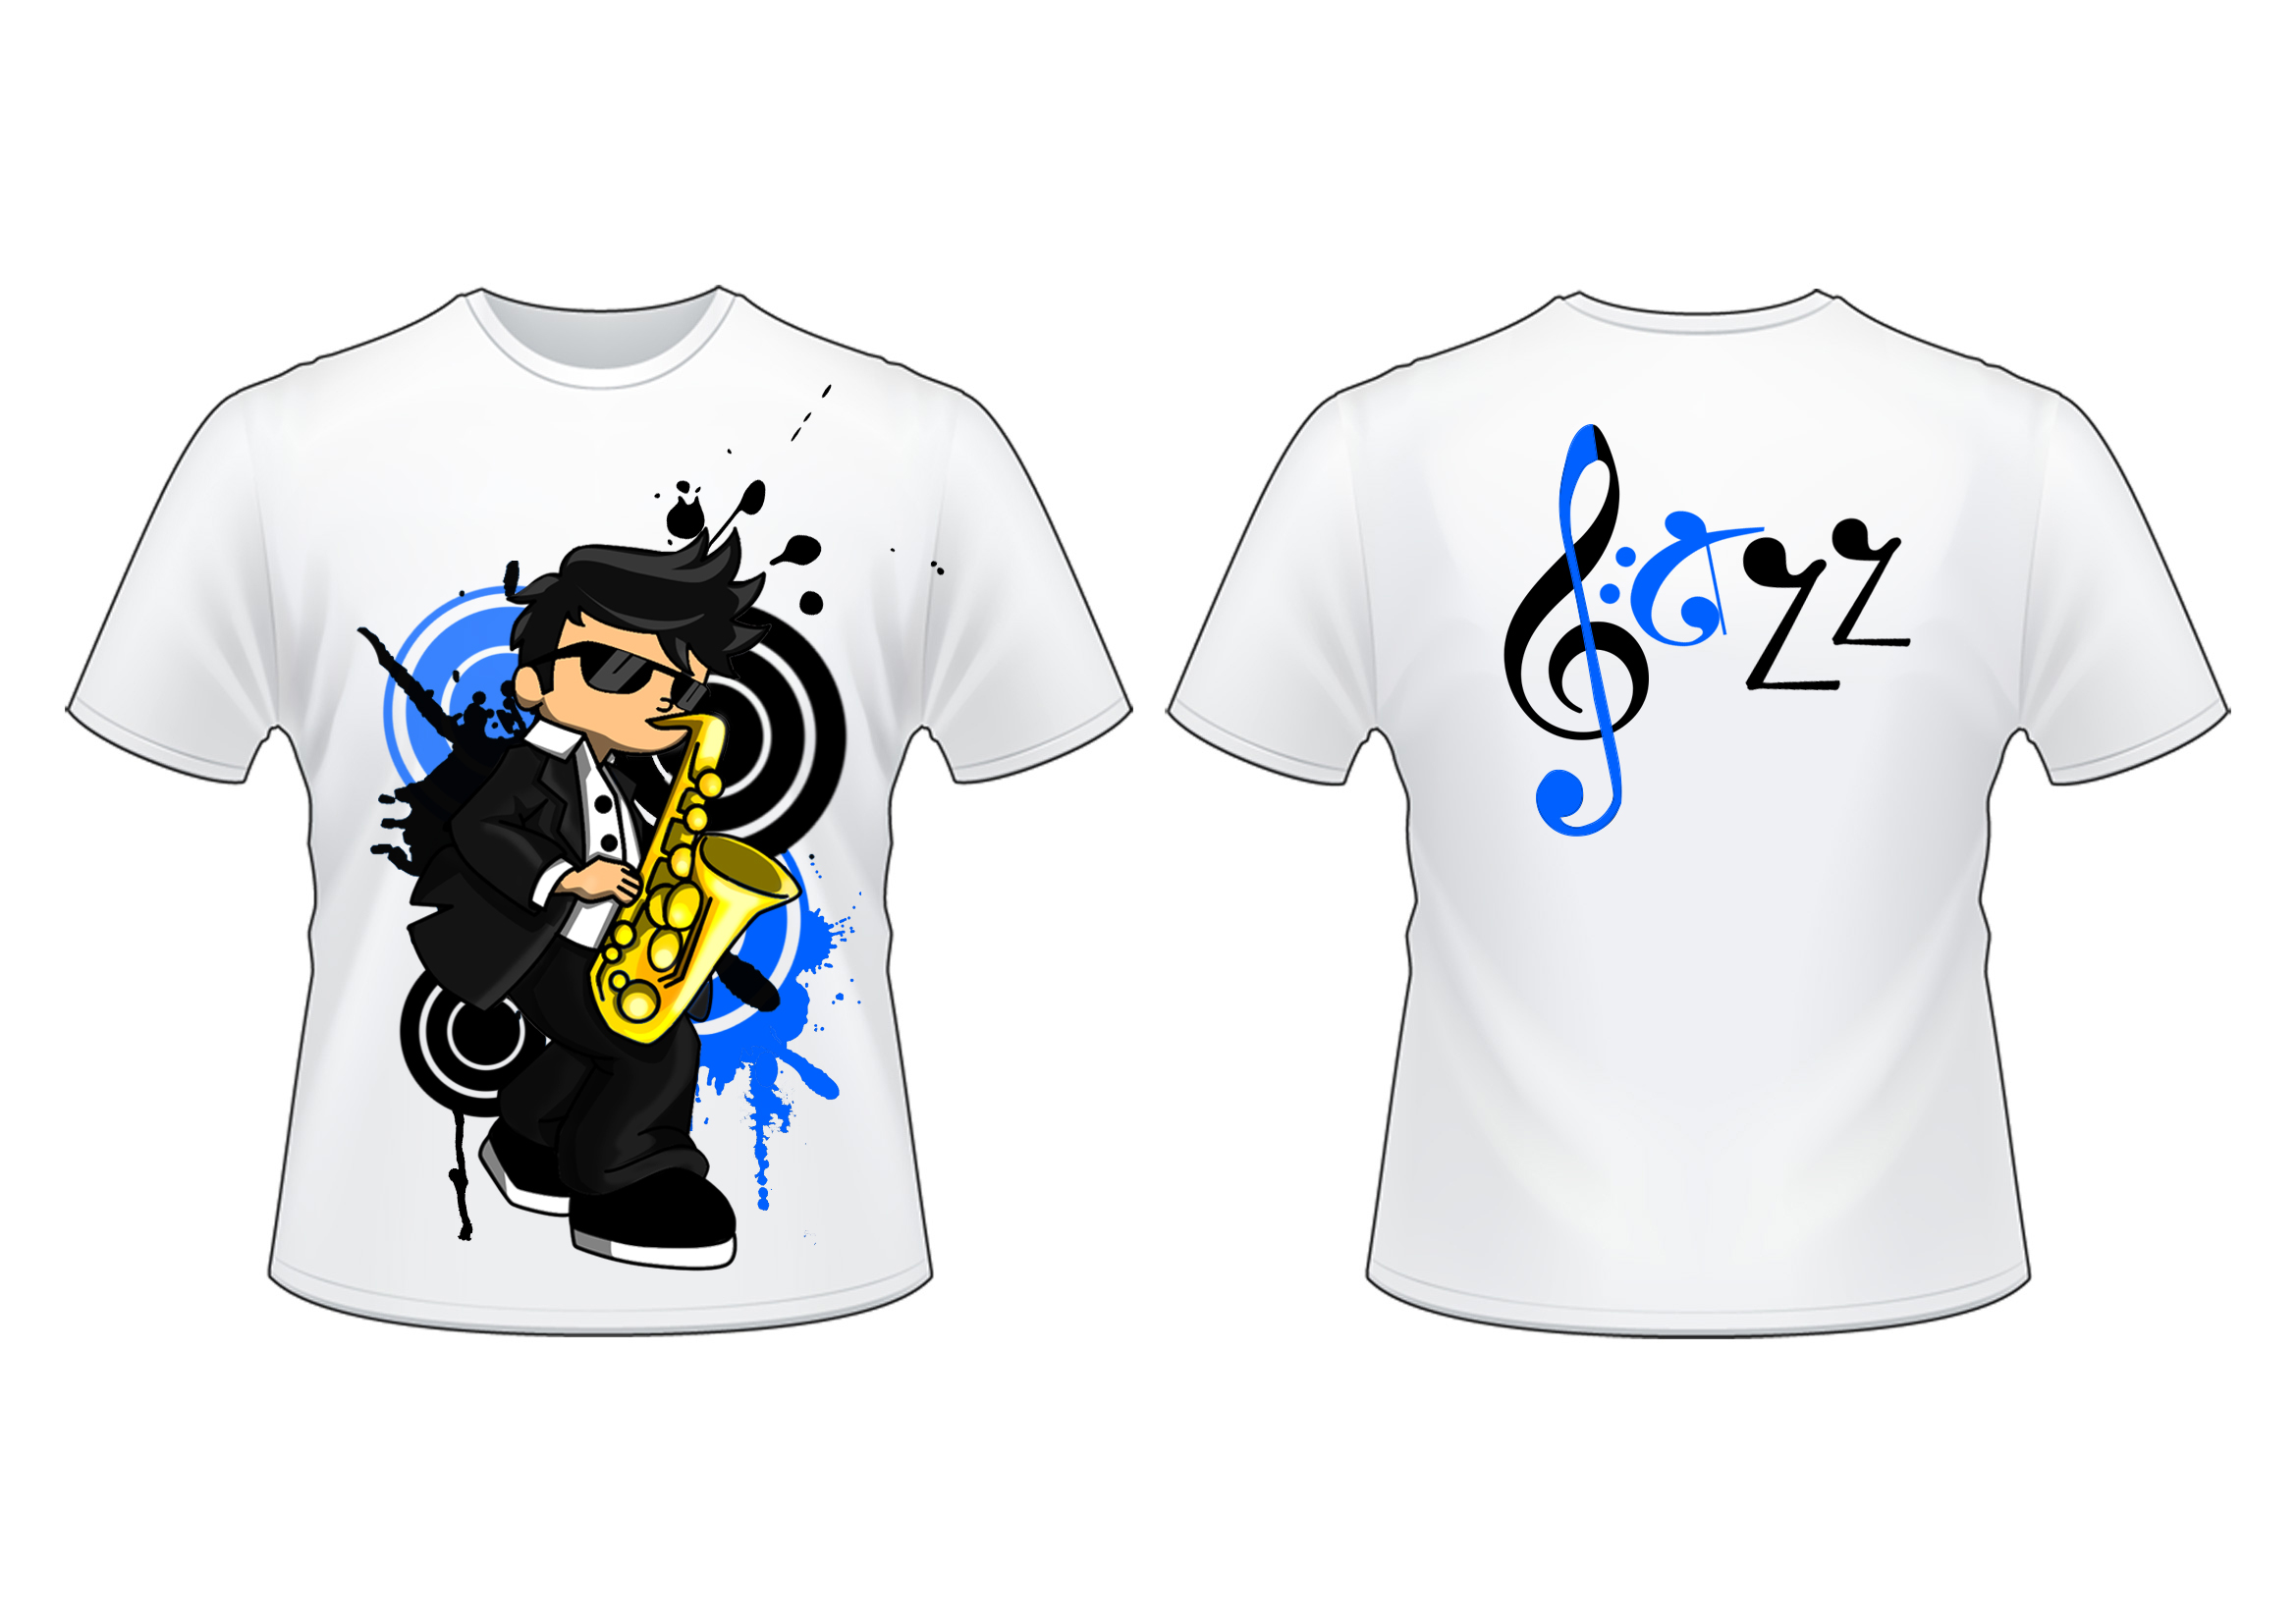 T shirt design jazz by timhansen on deviantart for T shirt printing in palmdale ca